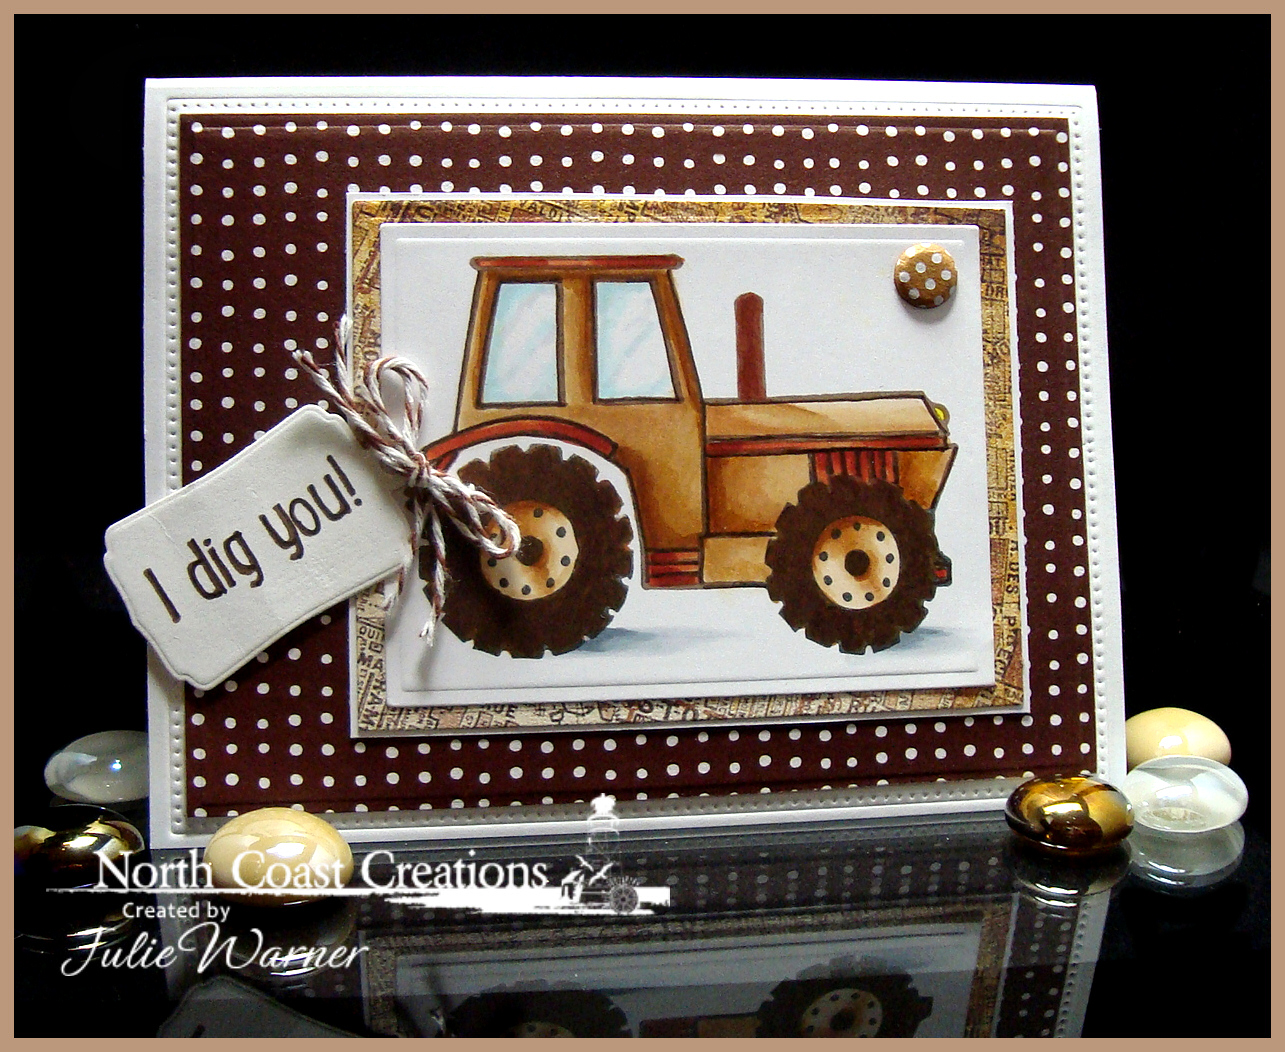 Stamps - North Coast Creations I Dig You, Our Daily Bread Designs Custom Mini Tag Dies, ODBD Custom Flourished Star Pattern Die